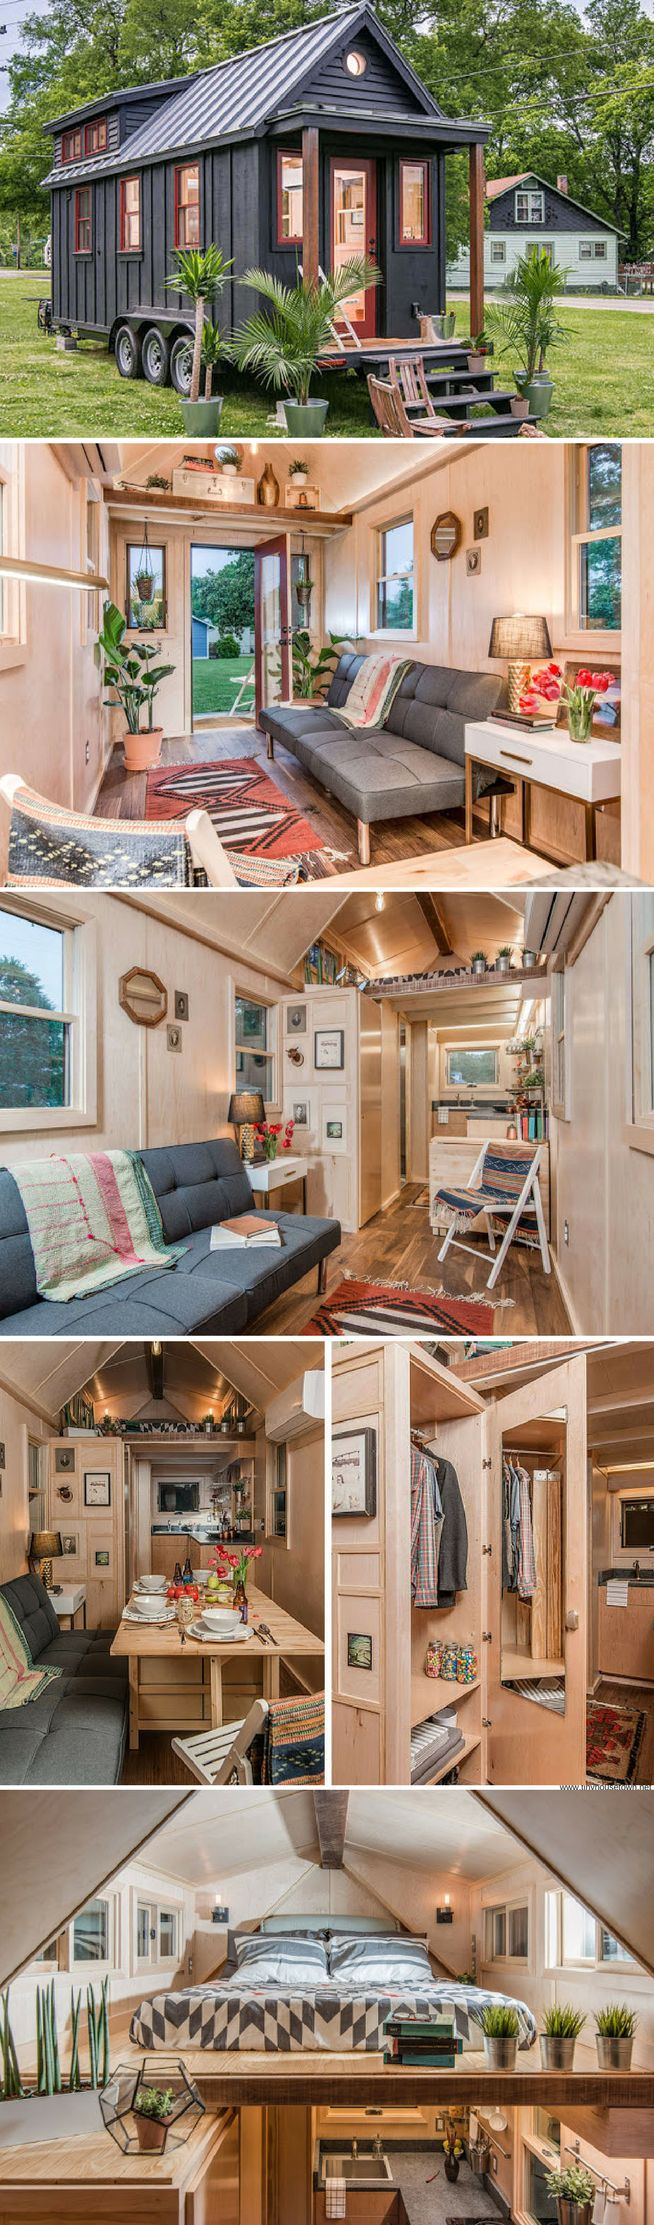 Tiny Home Interior Best 25 Tiny Homes Interior Ideas On Pinterest  Tiny Houses